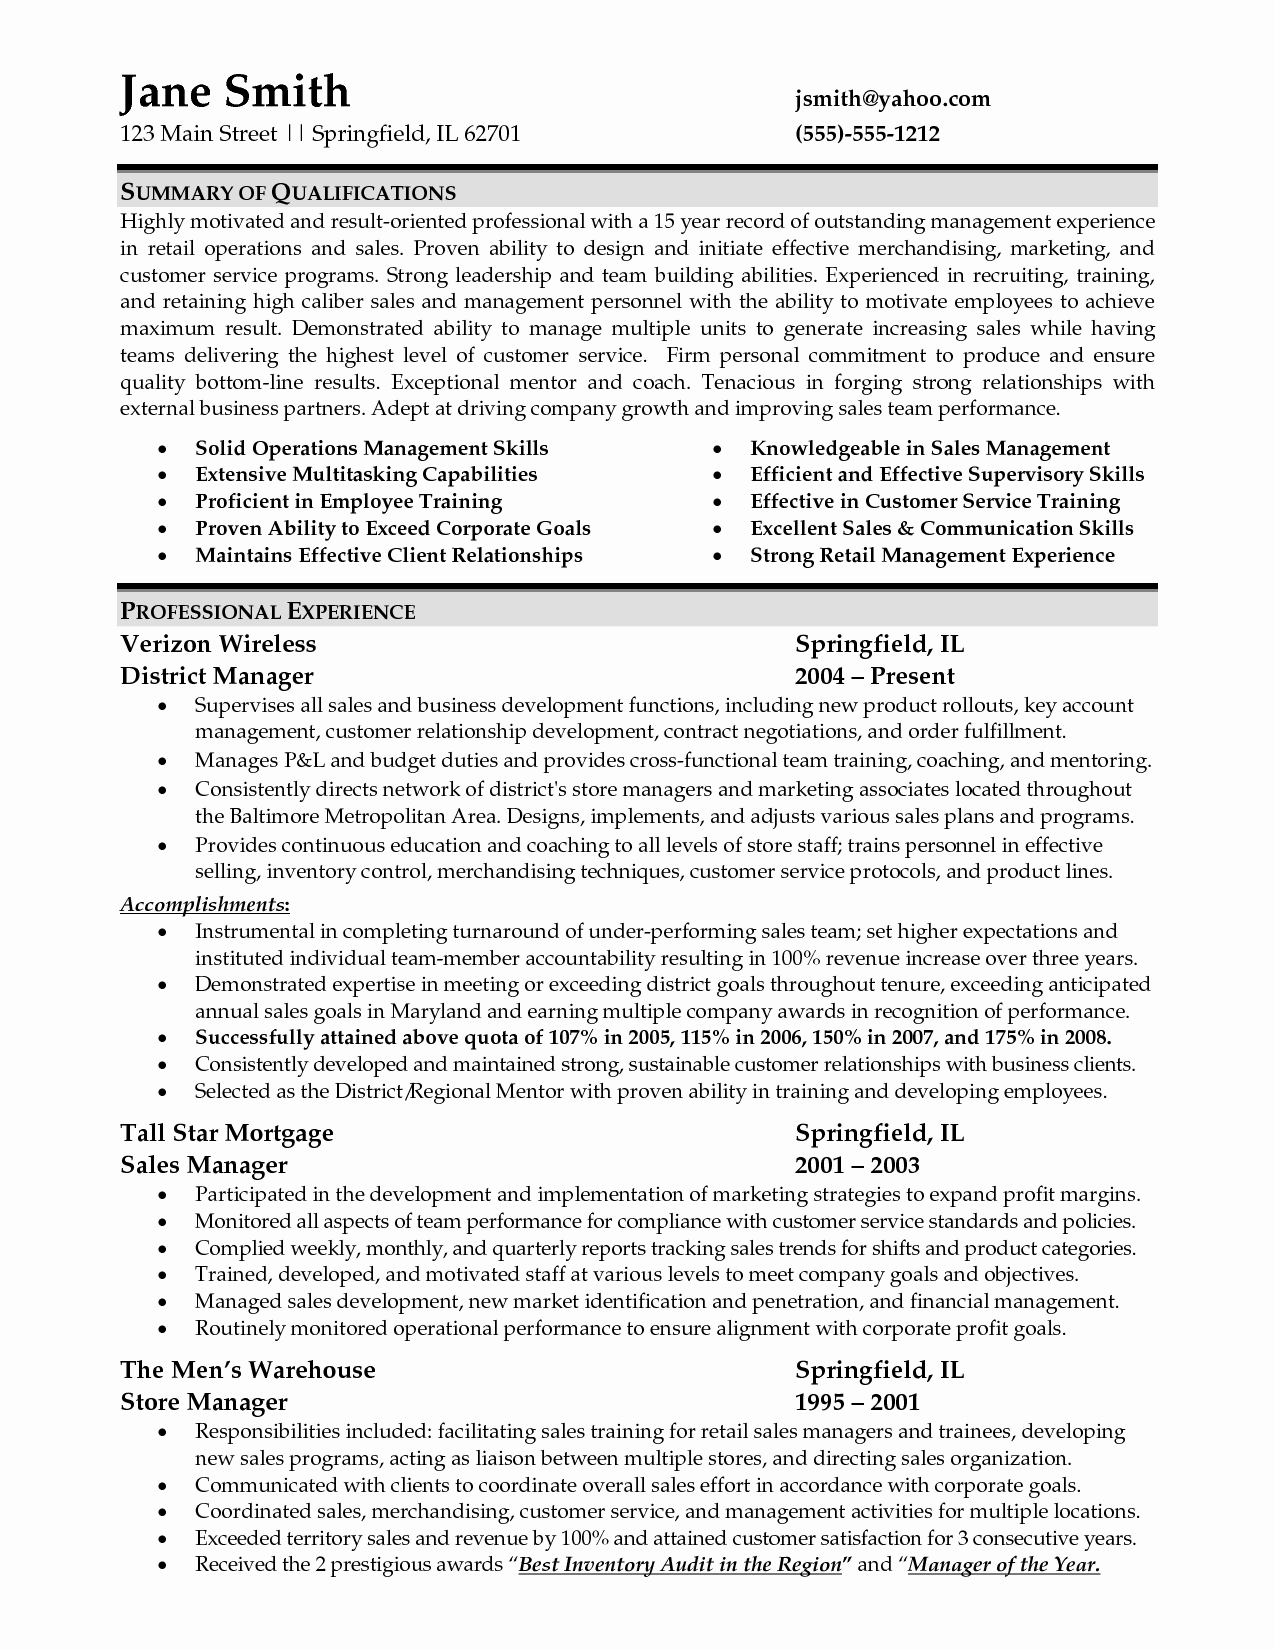 Sample Store Manager Resume Lovely Sample Resume for Retail Management Job